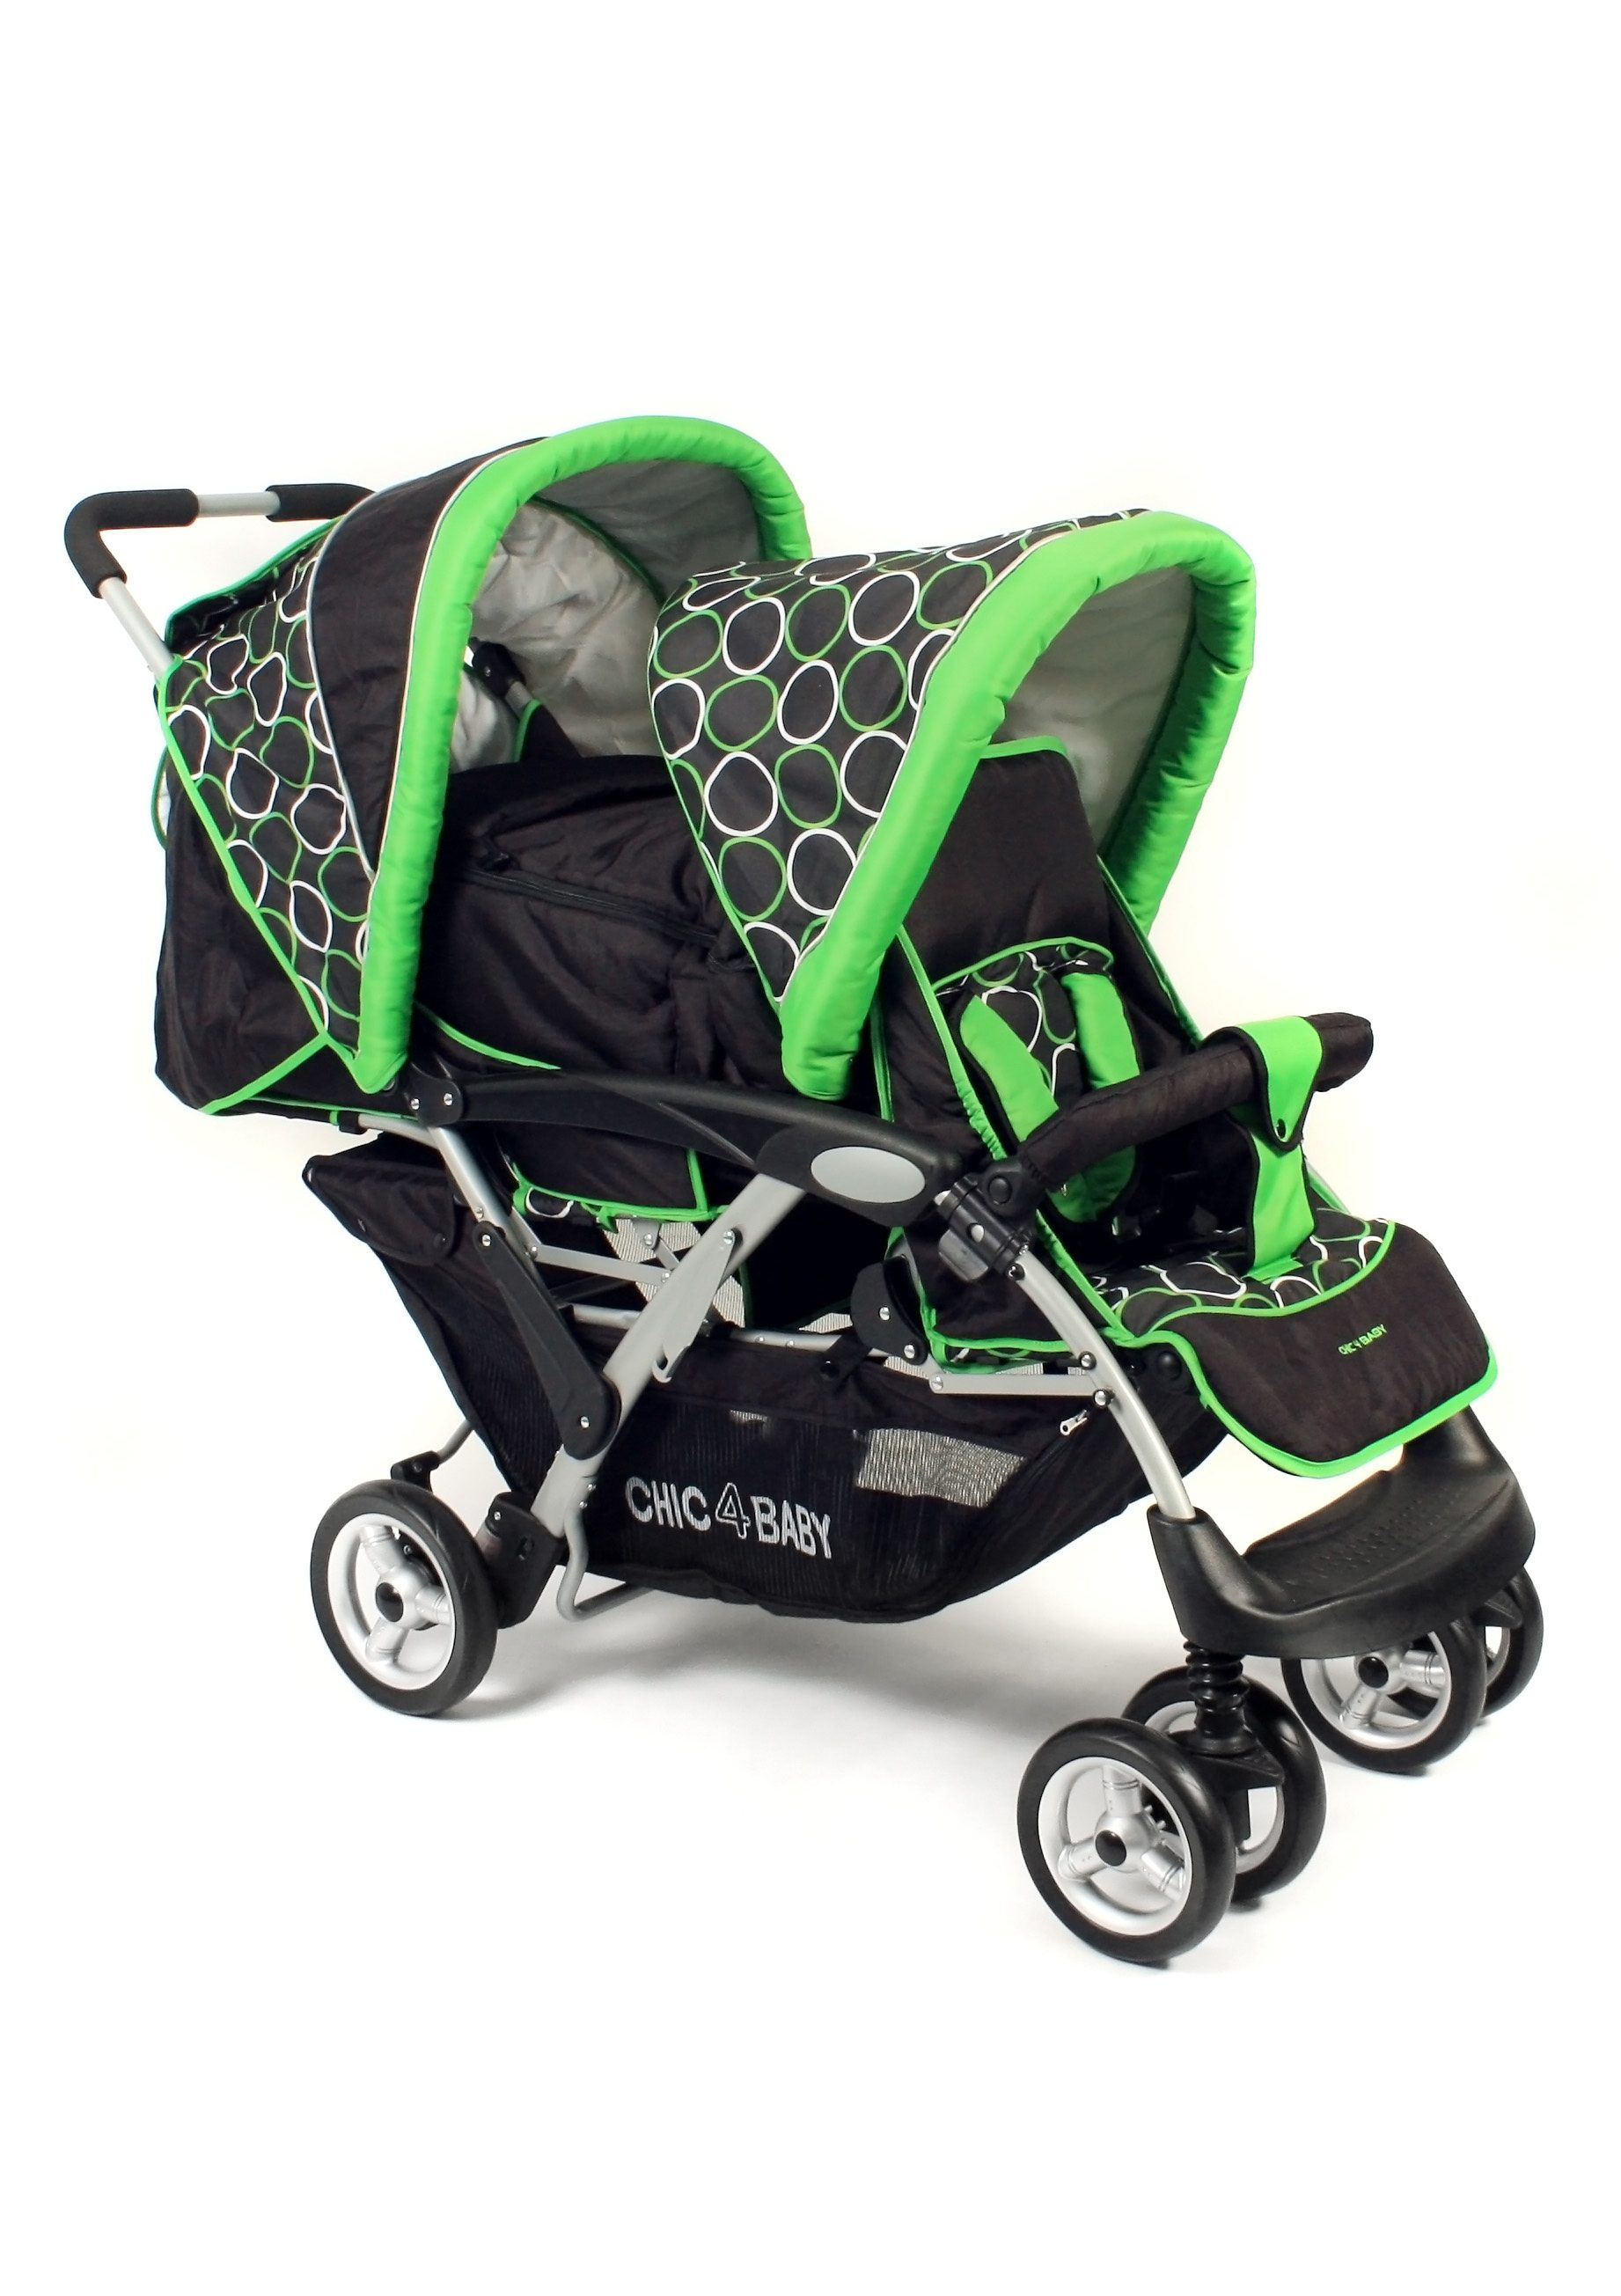 CHIC4BABY, Geschwister-Kinderwagen »Duo, Orbit green«